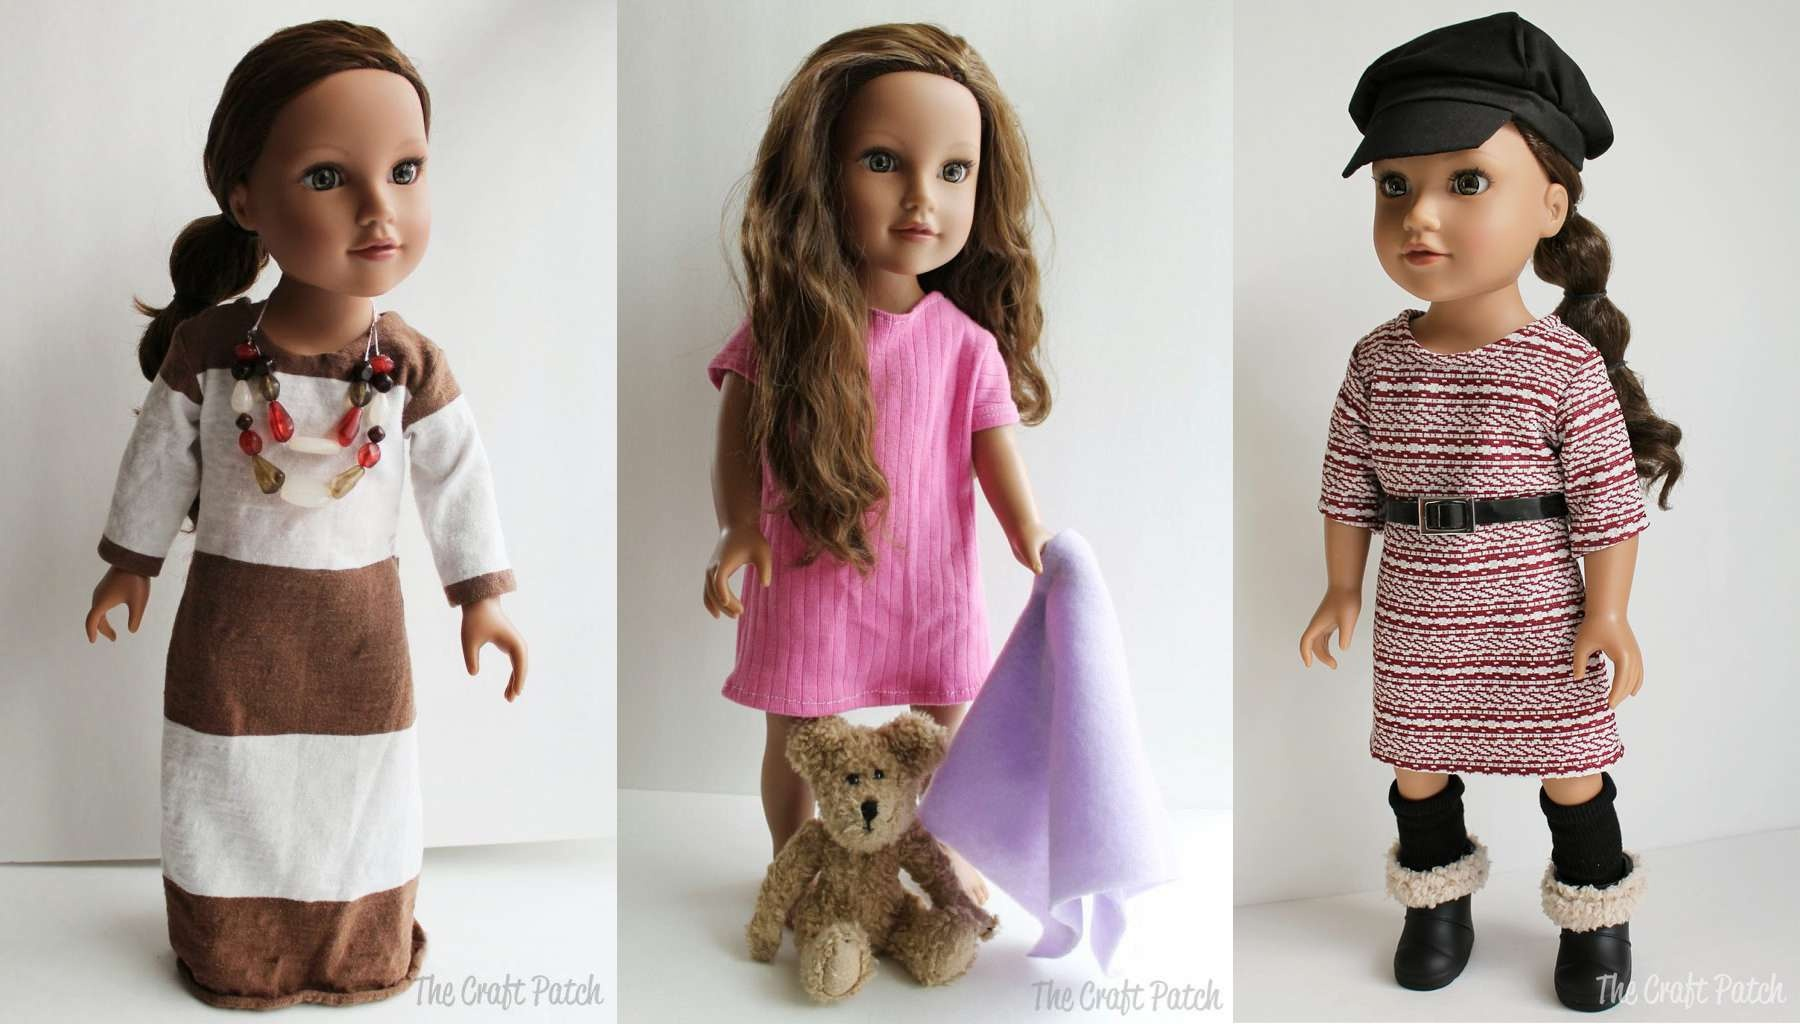 10 Free Sewing Patterns For Doll Clothes - Free Printable Crochet Doll Clothes Patterns For 18 Inch Dolls